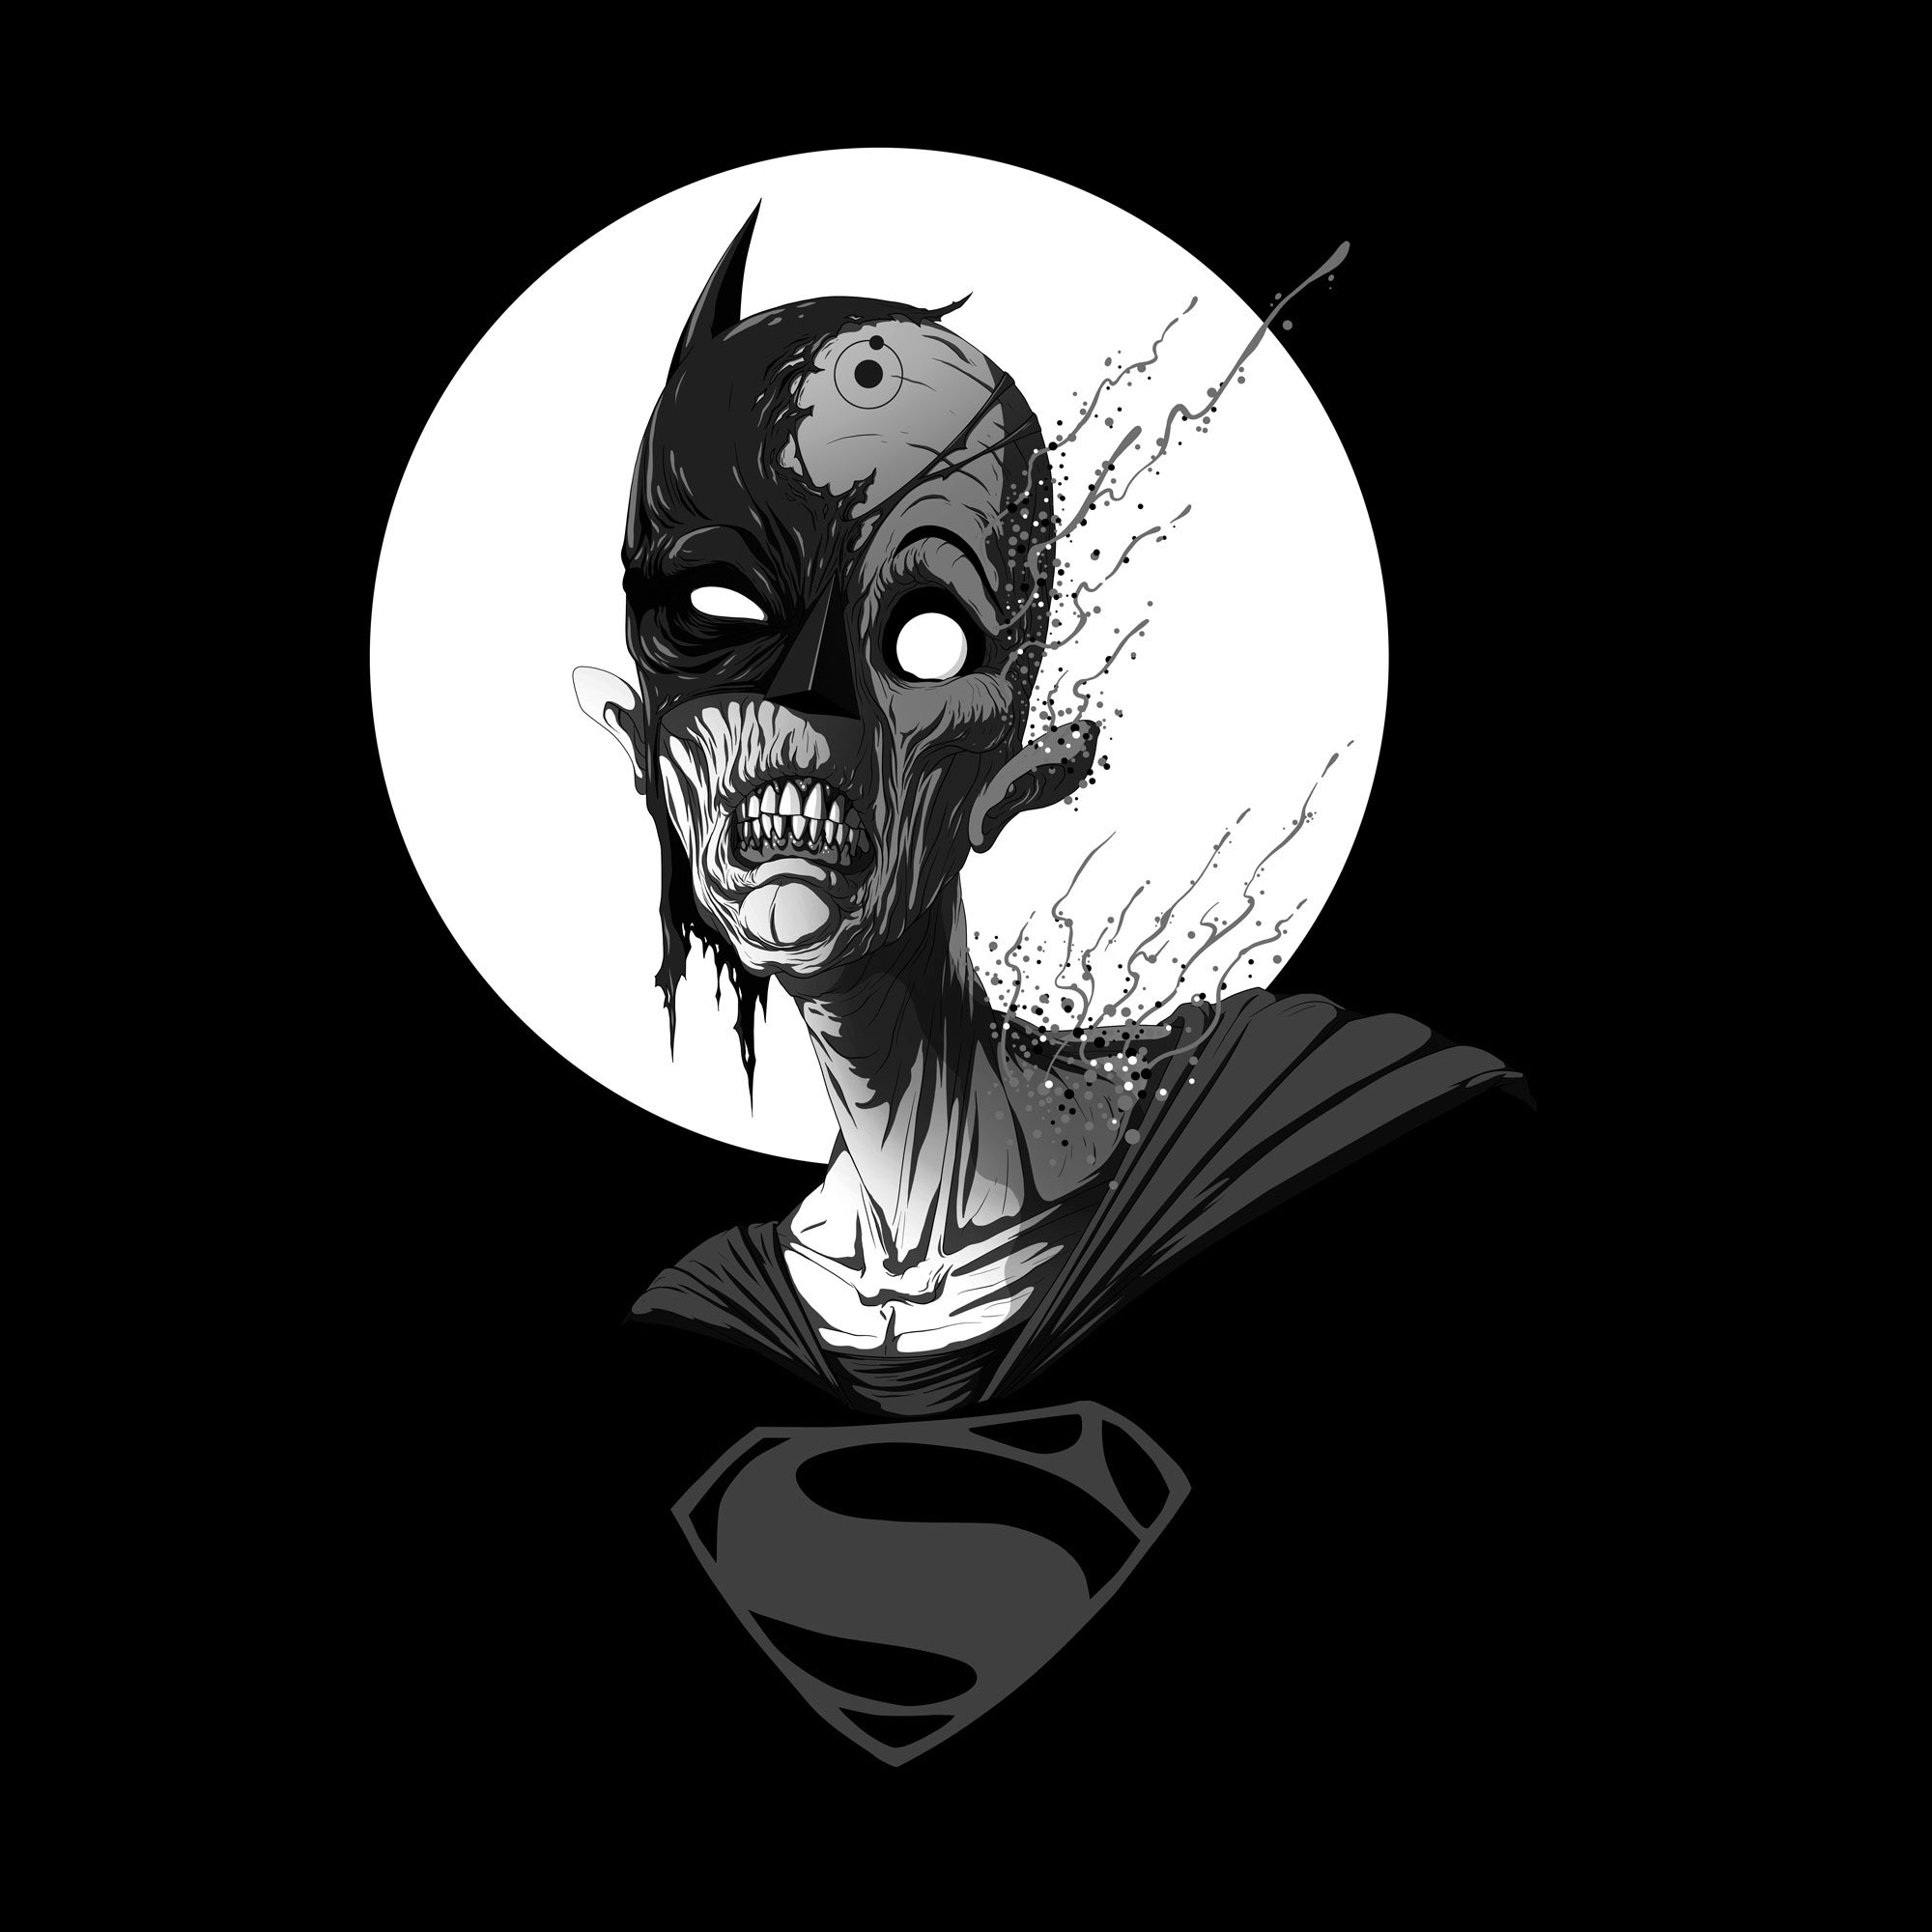 Congrats to my friend @ZackSnyder Snyder for the insane #ReleaseTheSnyderCut announcement last night. Emphasis on insane. 🖤 https://t.co/yh5xdiMJJI